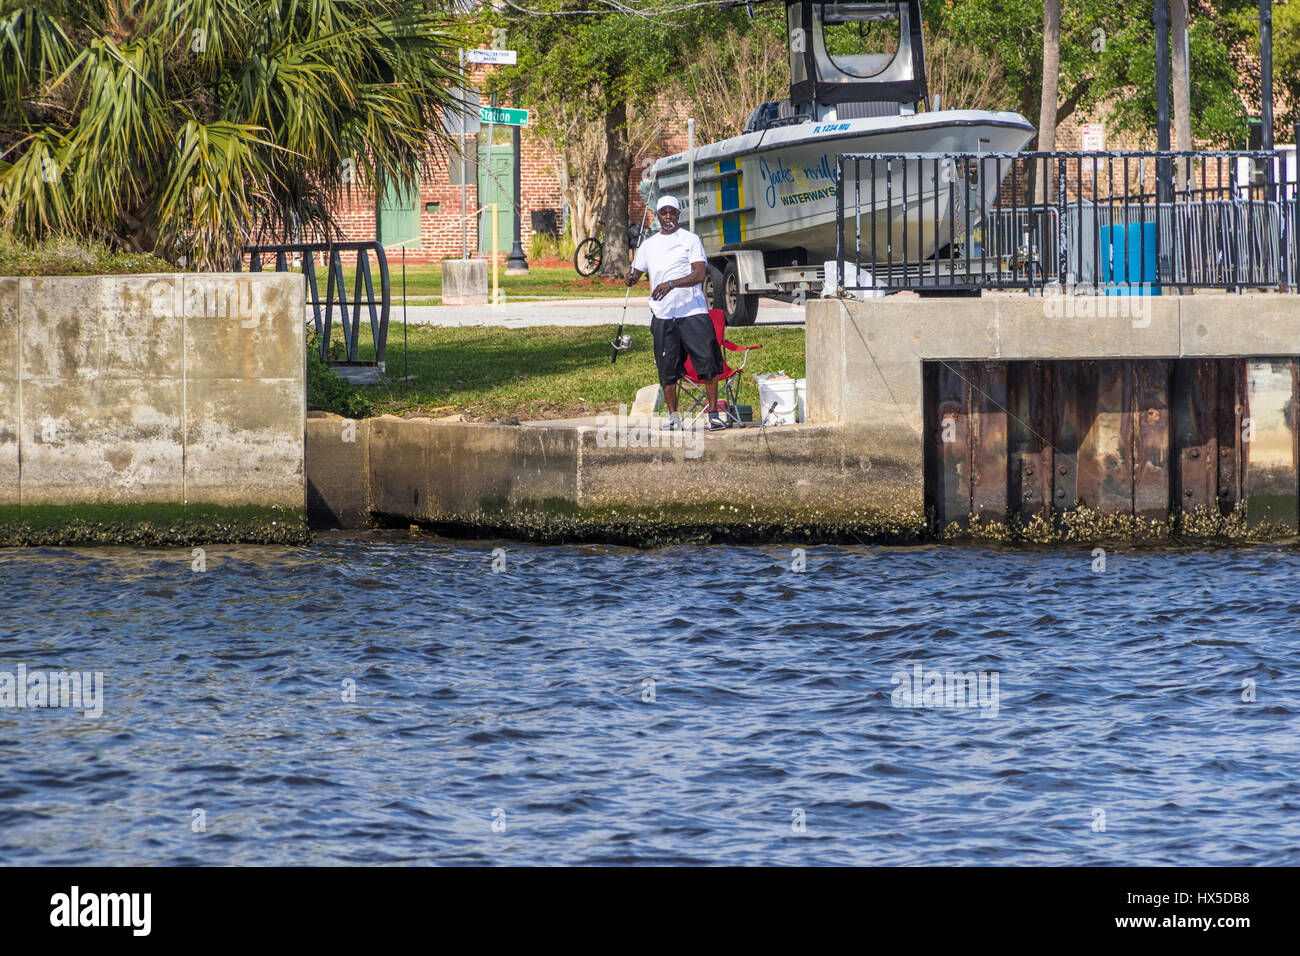 Man fishing in St Johns River in Downtown Jacksonville, FLorida. - Stock Image